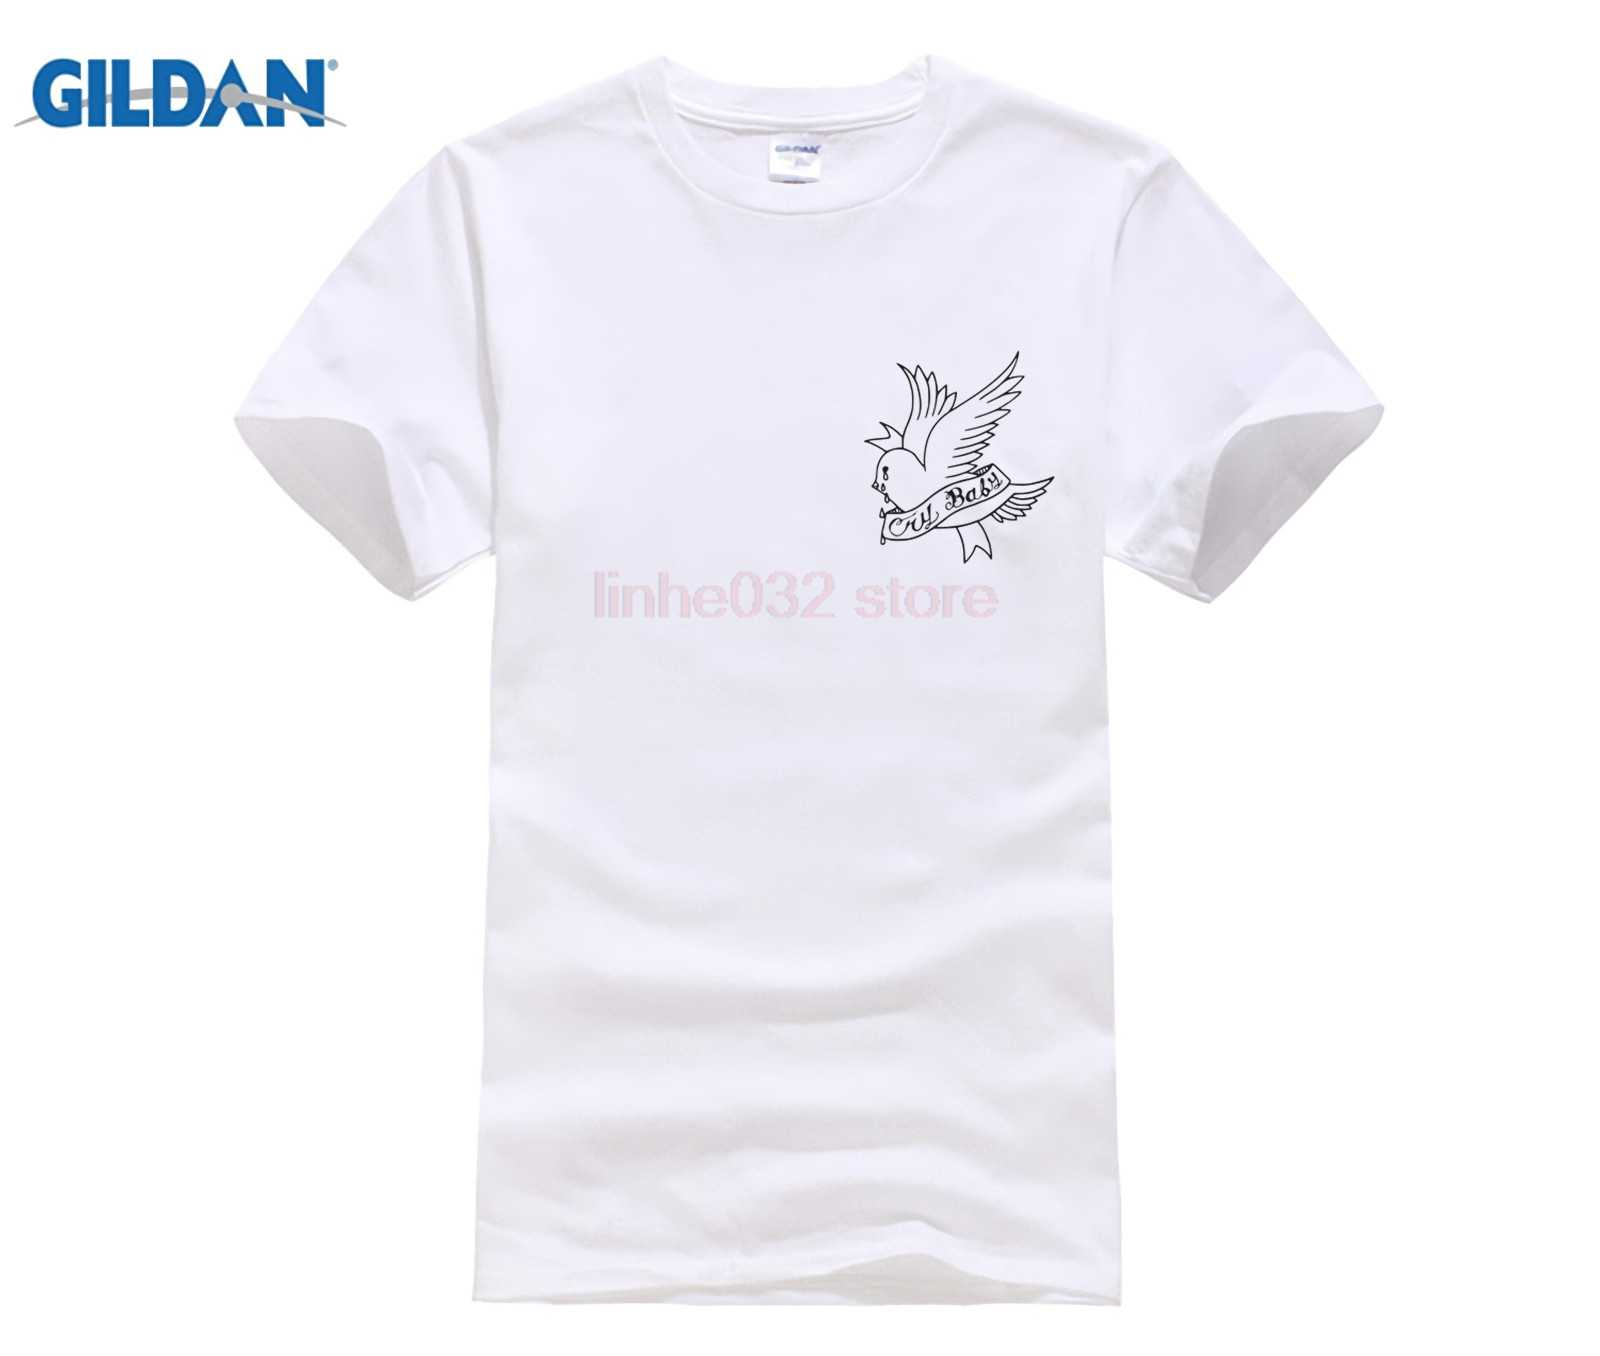 8788aca86 Detail Feedback Questions about 100% cotton O neck printed T shirt ...